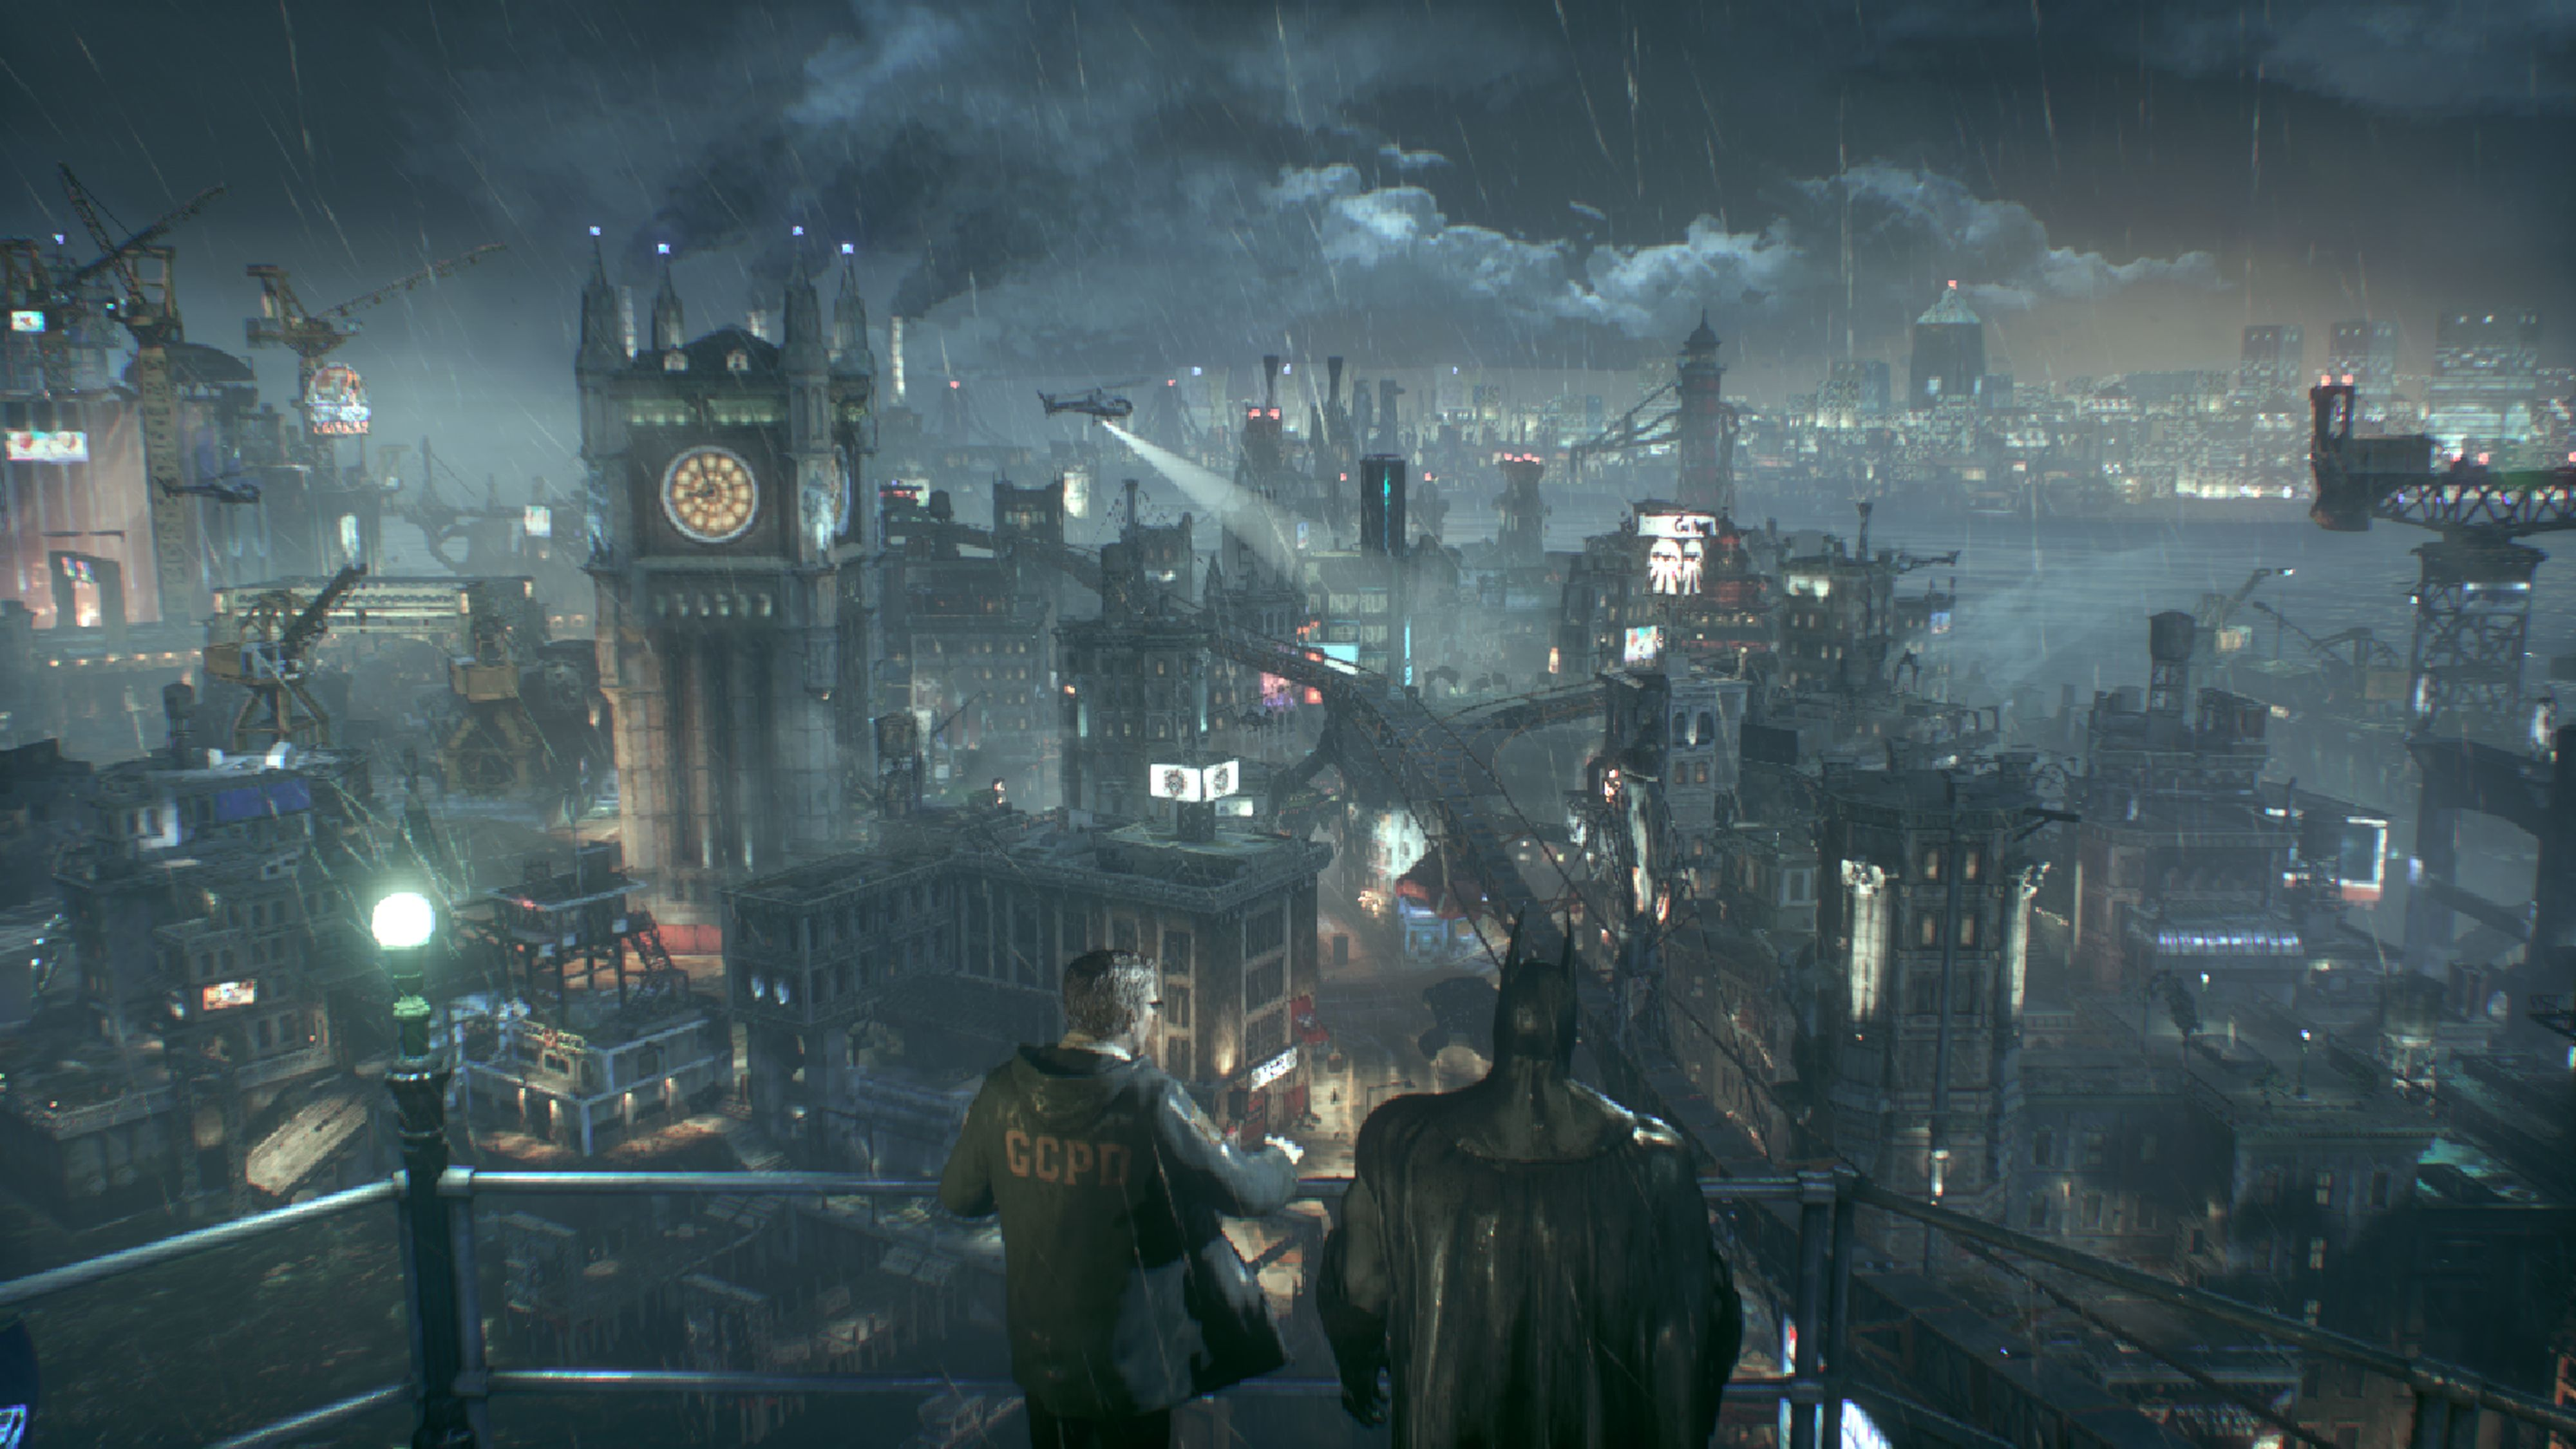 Batman Arkham Knight Meeting Up With Commissioner Gordon On Gcpd